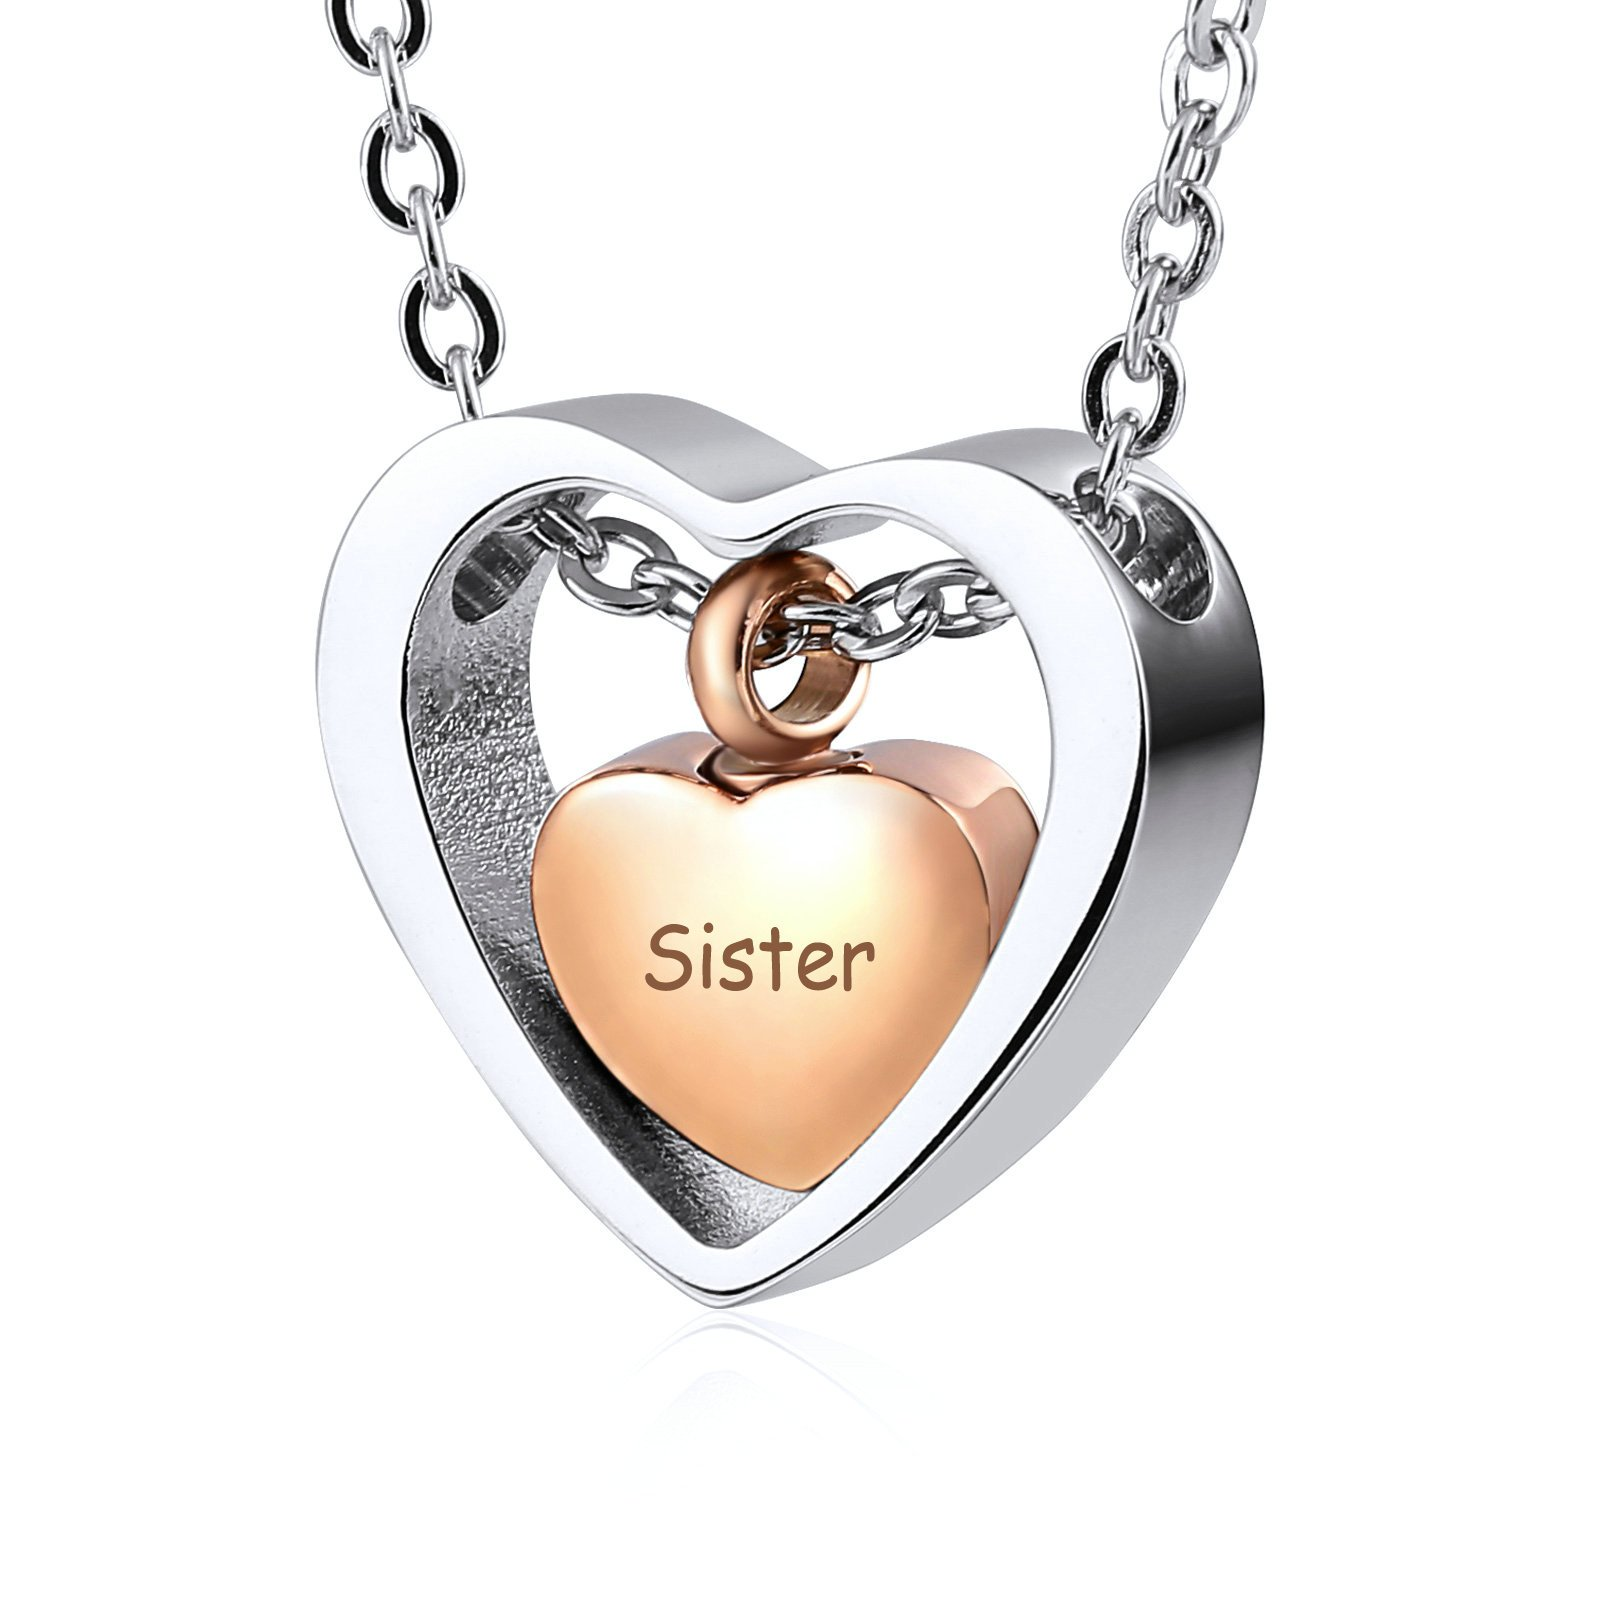 AnaZoz Stainless Steel Rose Gold Plated Heart Urn Pendants Cremation Memorial Jewelry Urns for Human Ashes Necklace Sister